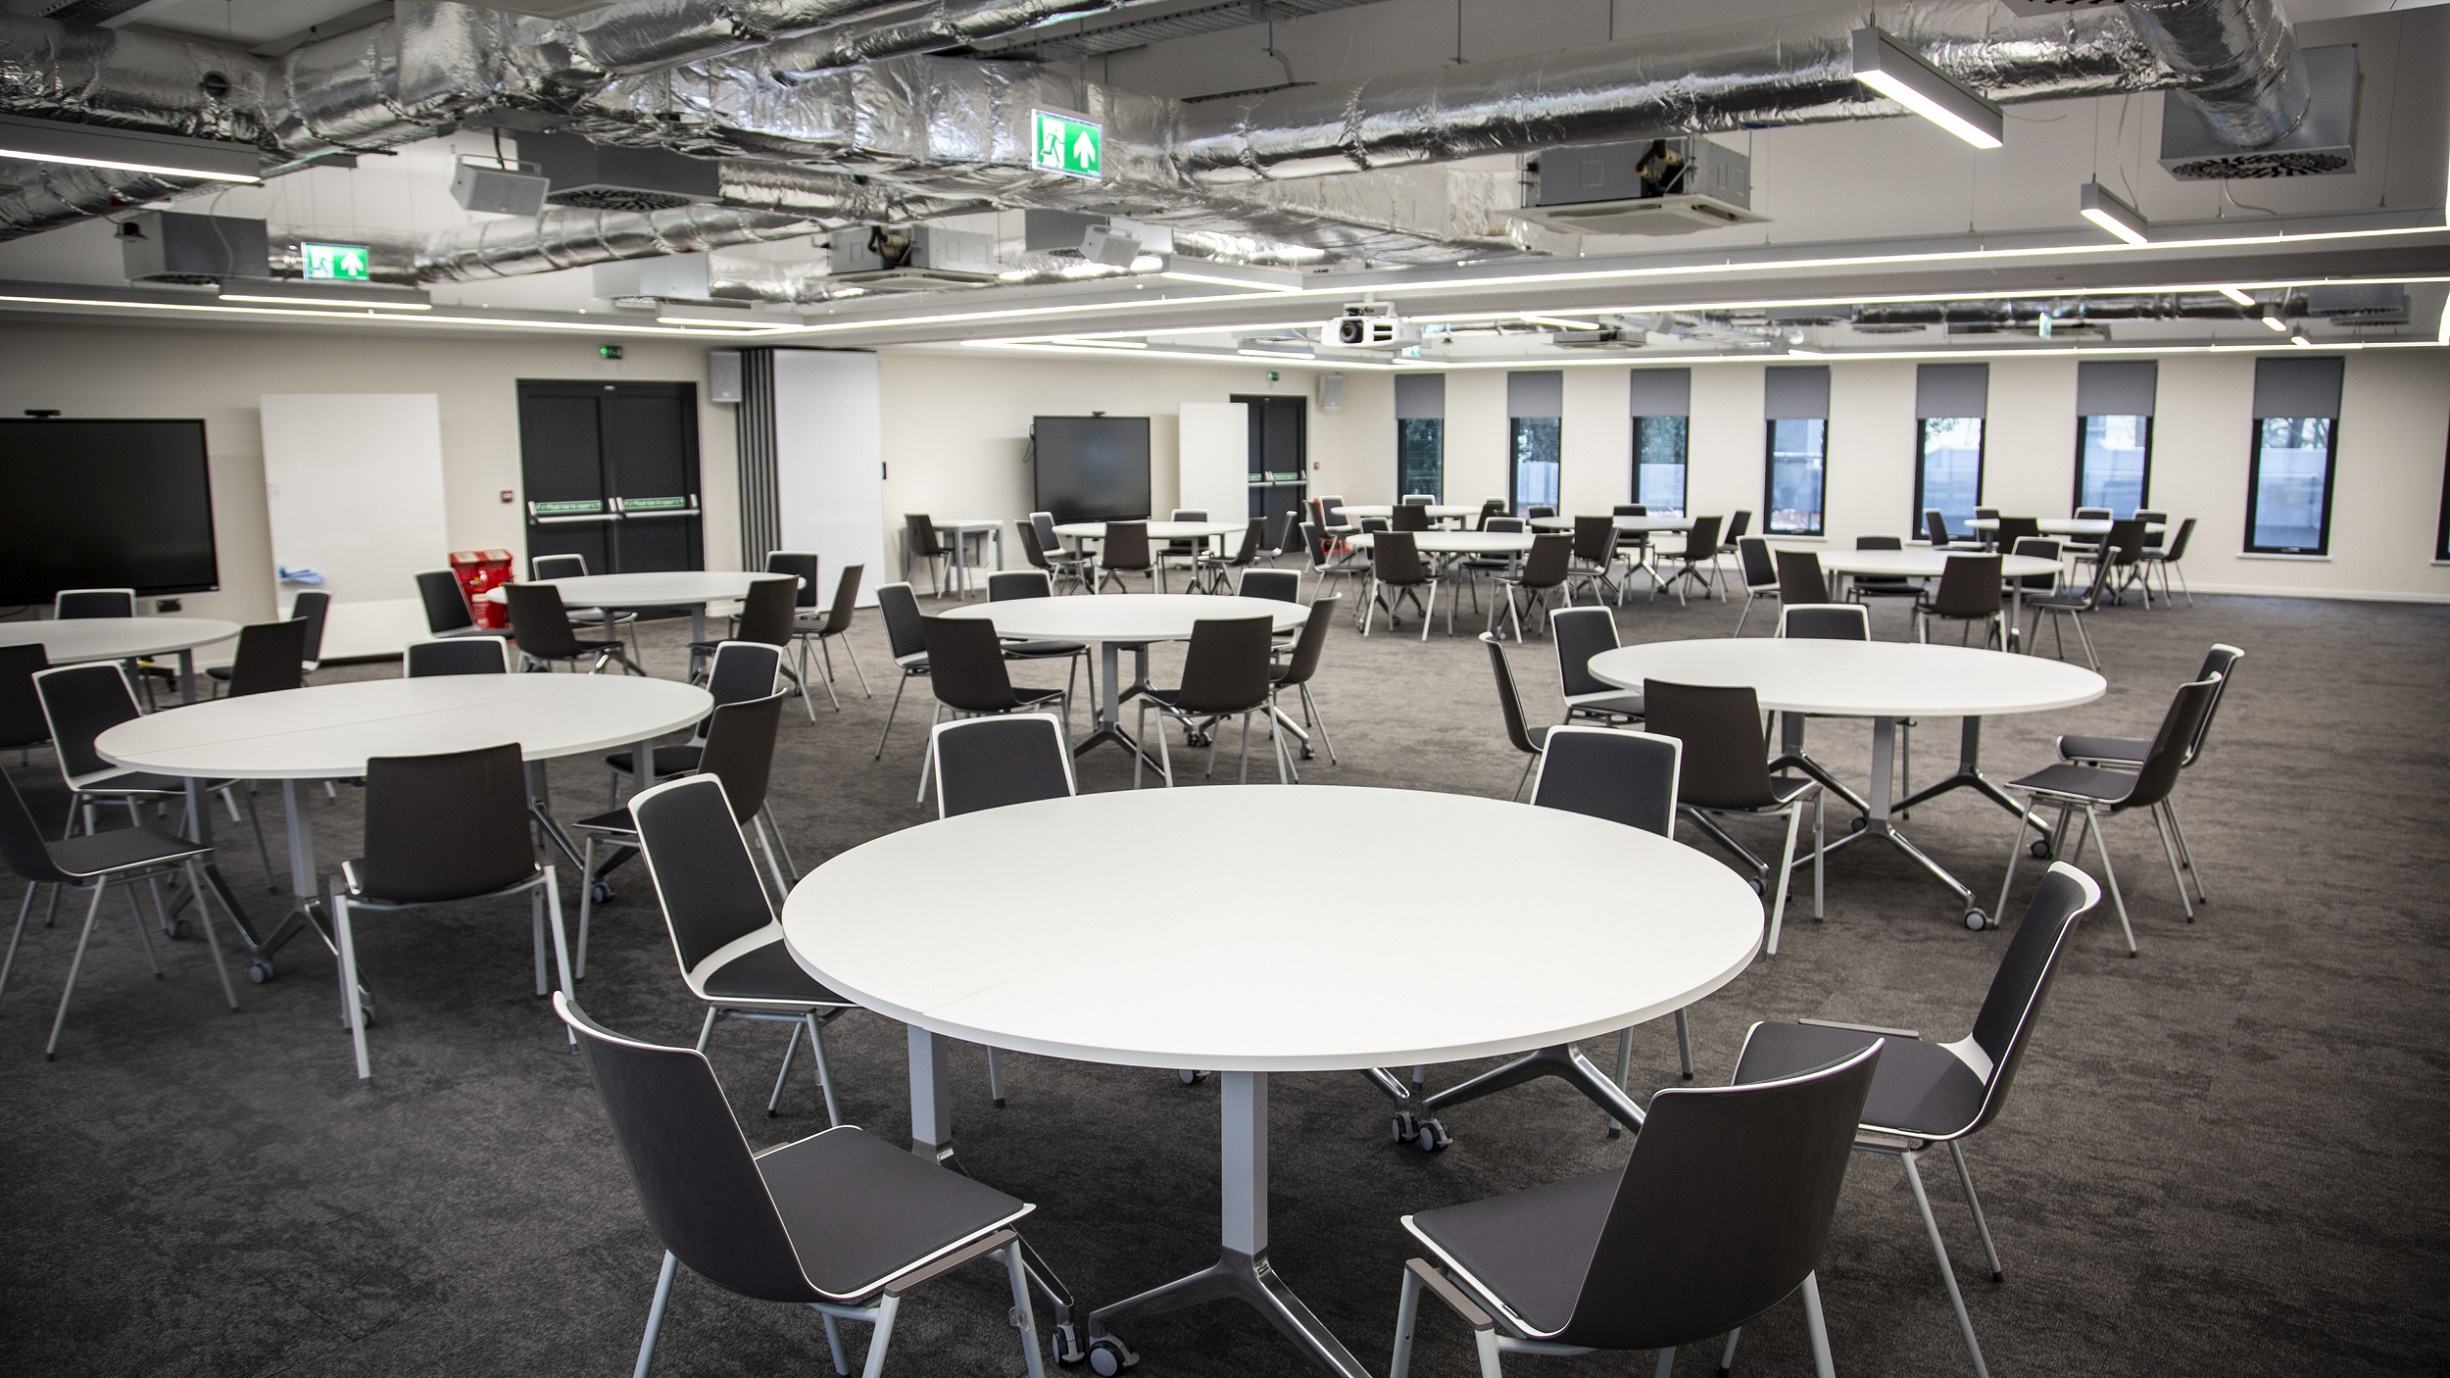 The new Severn Trent Academy houses an extensive suite of stylish, modern conference facilities.